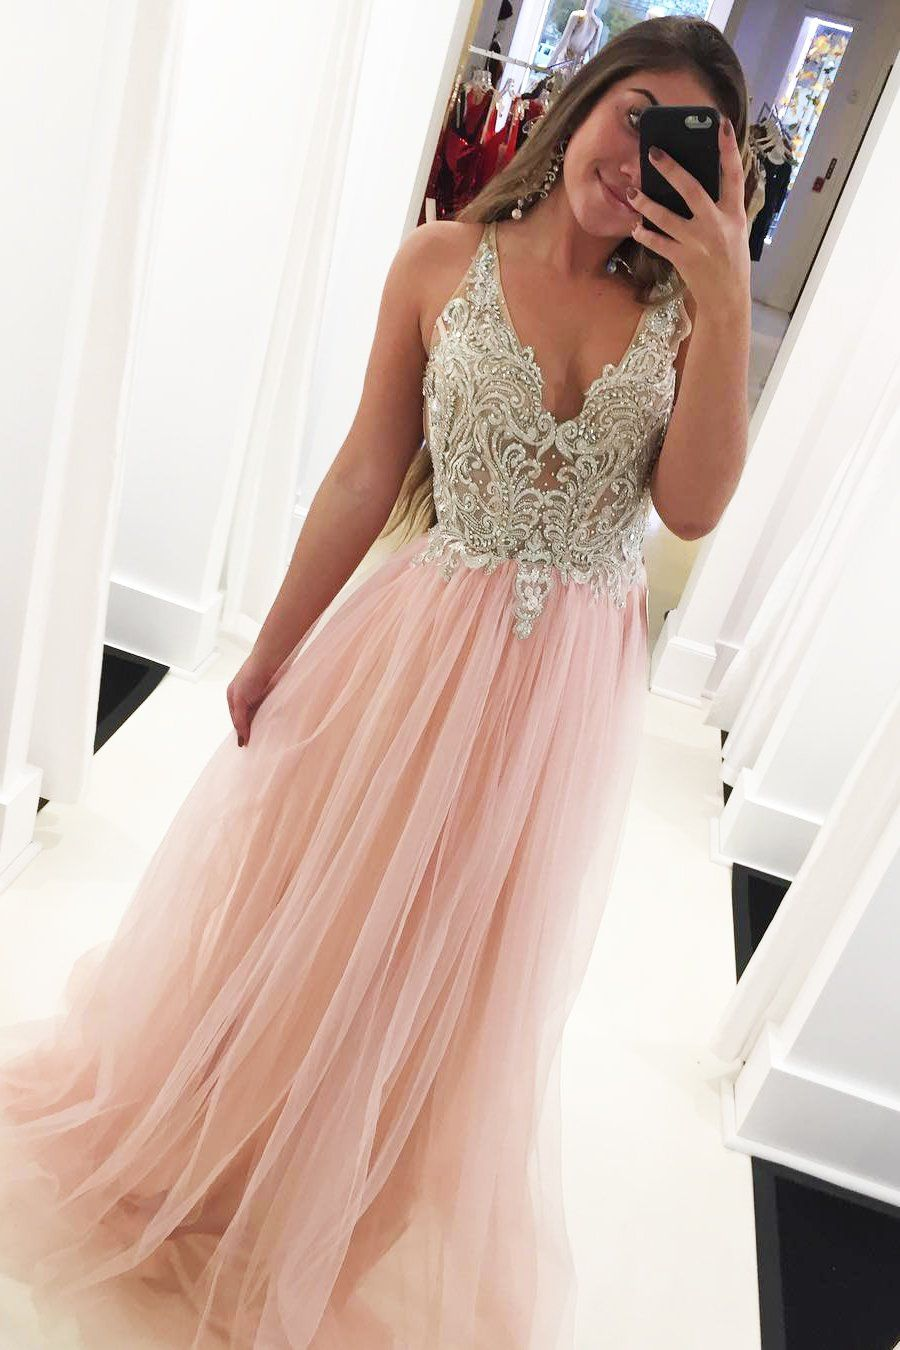 A Line Pink Tulle Prom Dress With Beading Appliques Us 12 Photo Color In 2021 Pink Prom Dresses Prom Dresses Pink Homecoming Dress [ 1350 x 900 Pixel ]